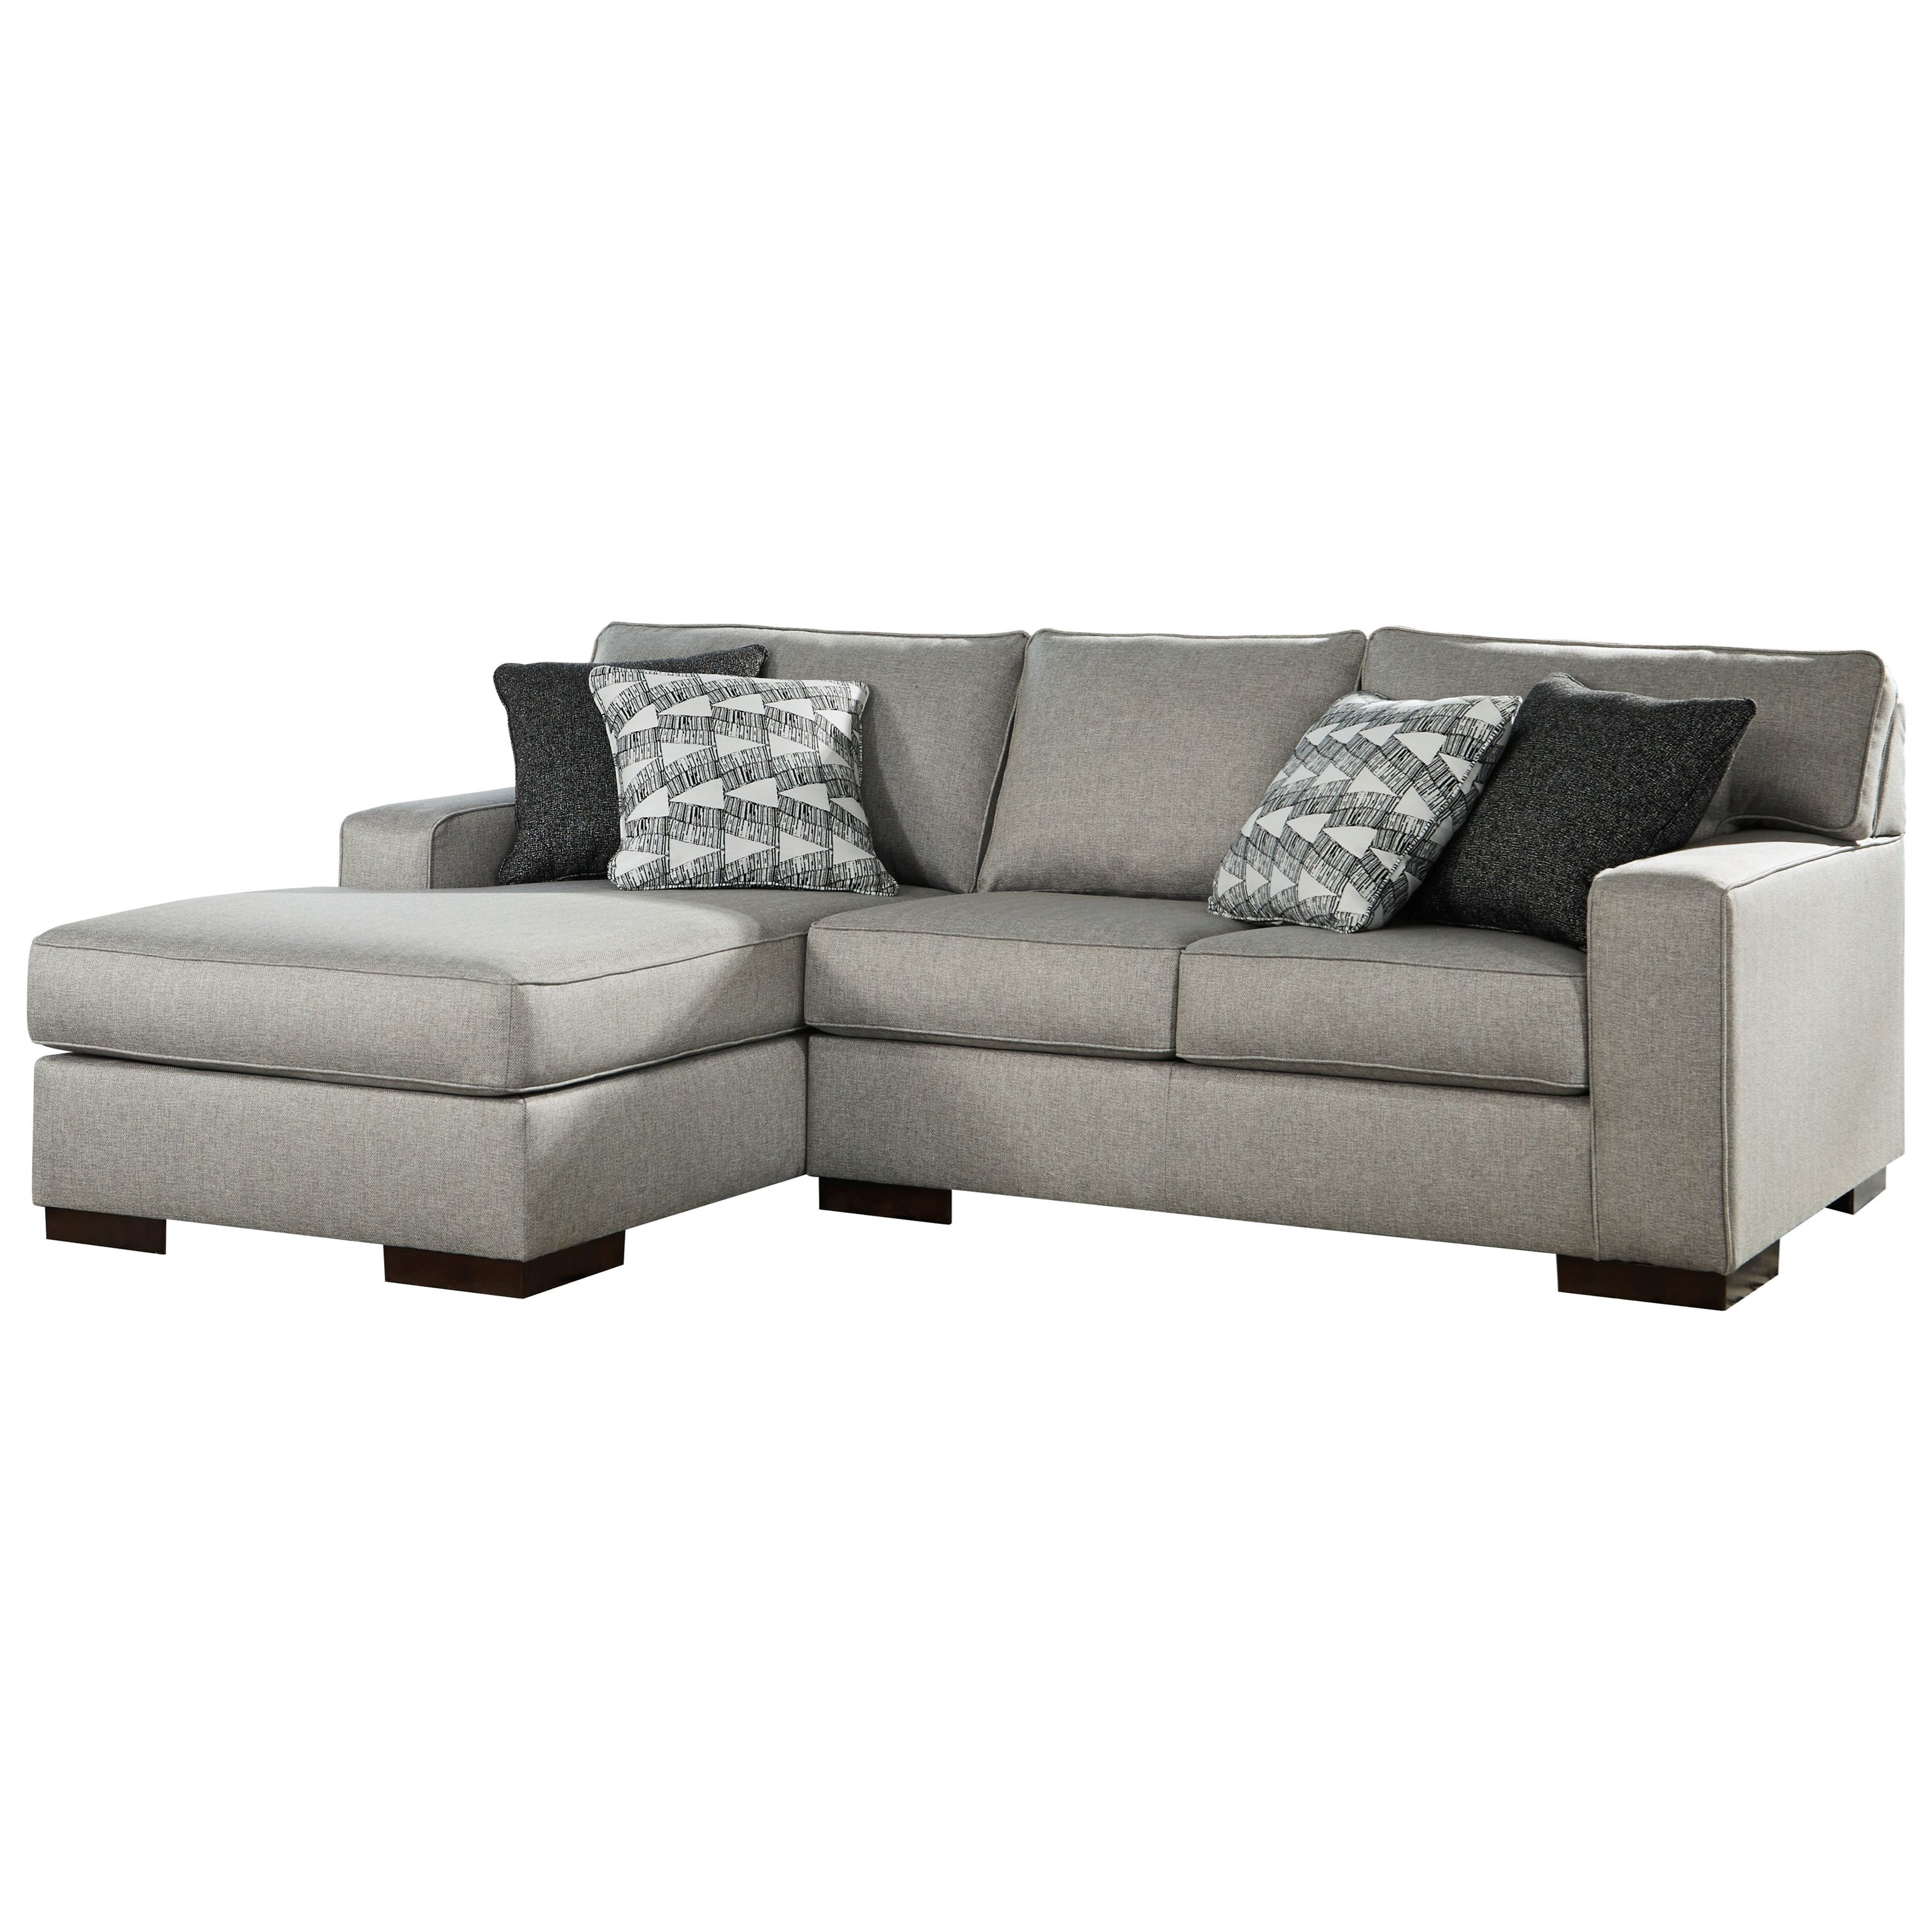 Marsing Nuvella 2-Piece Sectional with Chaise by Benchcraft at Walker's Furniture